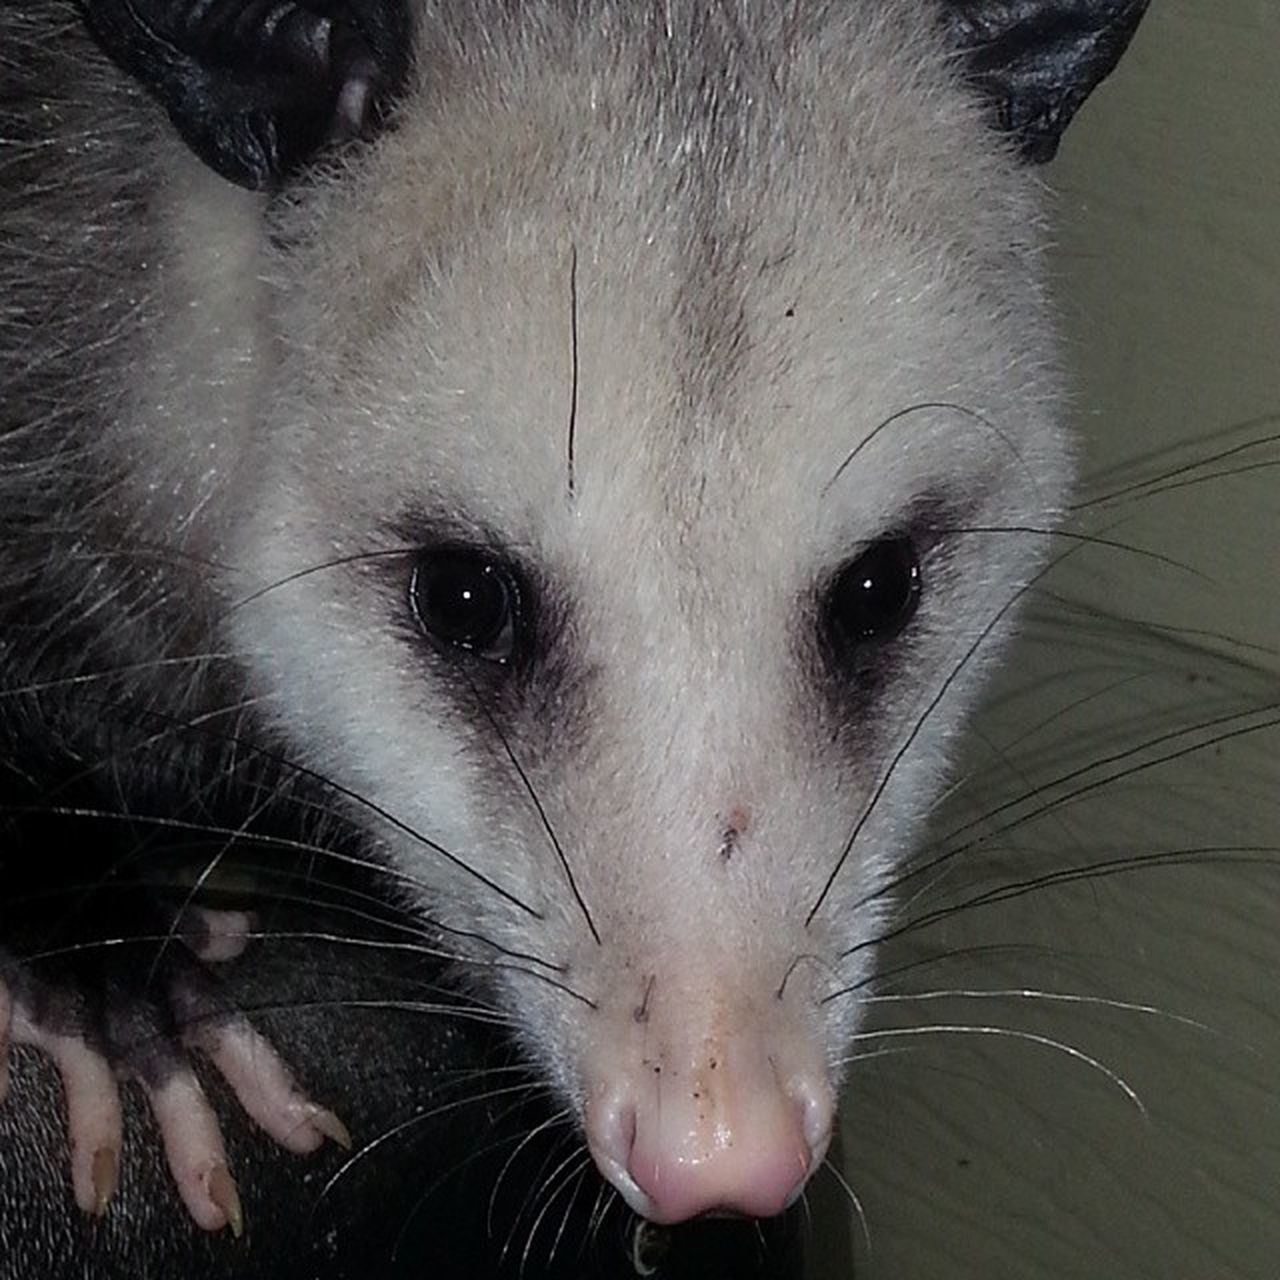 PossumsOfInstagram